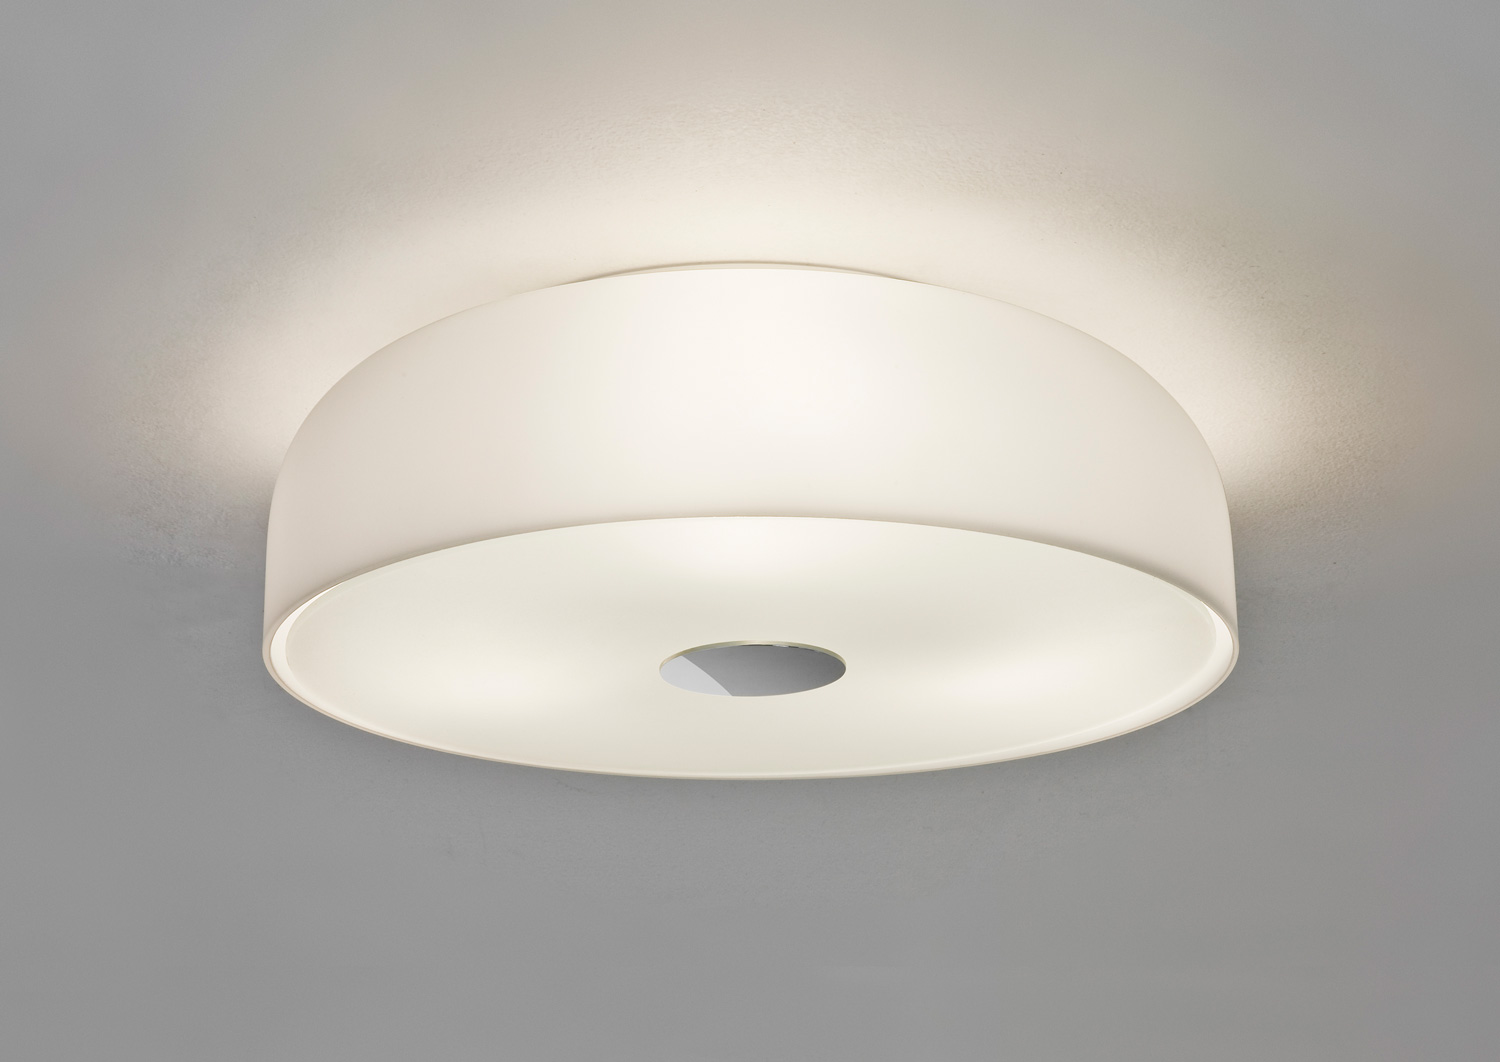 Astro Syros 350 7189 round dome opal glass bathroom ceiling light 3x40W E27 IP44 Thumbnail 1